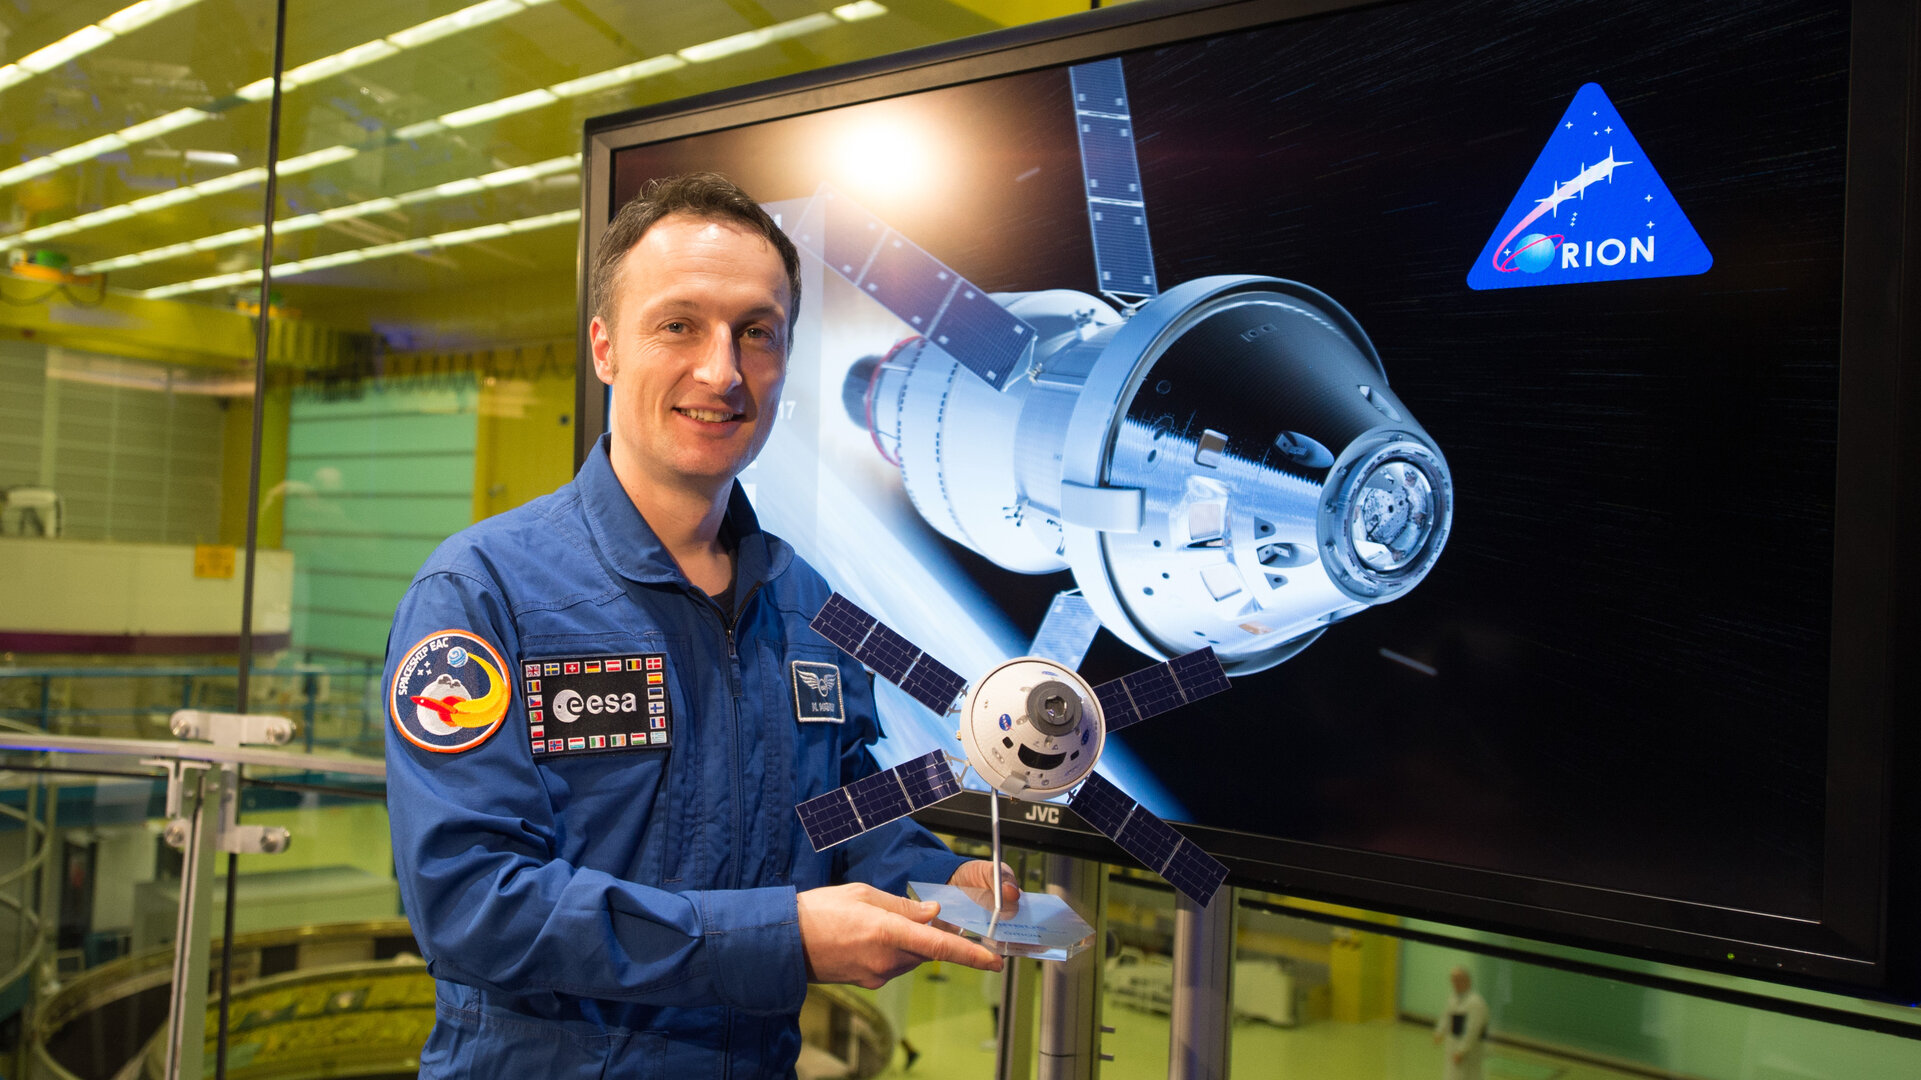 ESA astronaut Matthias Maurer at the signature signing